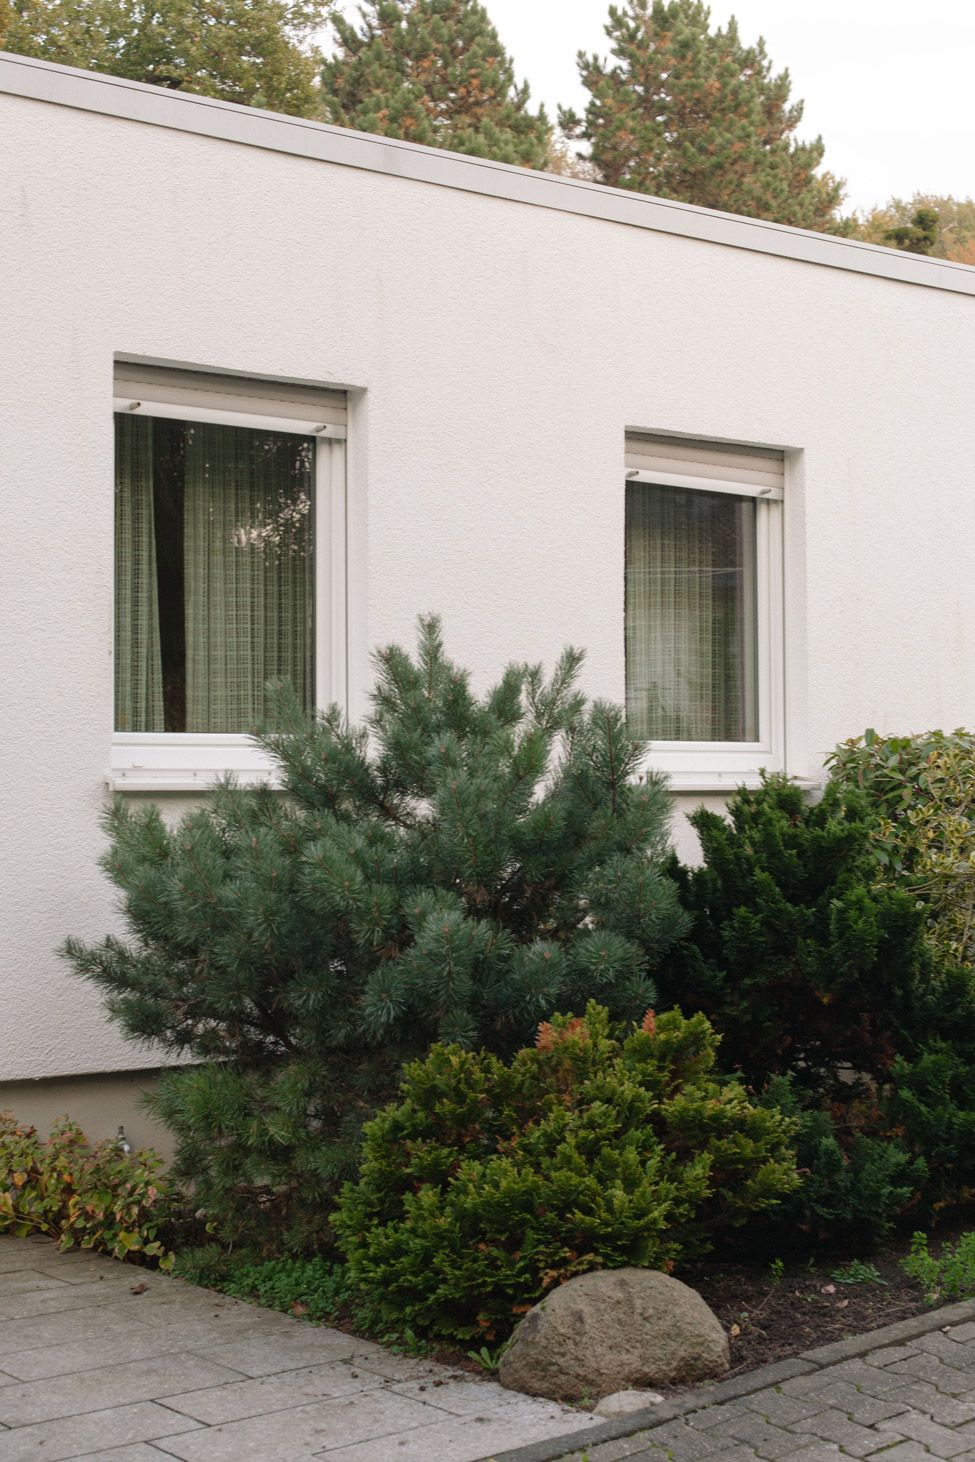 LOOKBOOK COLLECTION N°2 www.collectionno2.de  #suburb #collectionno2 #house #window #windowlooking #curtains #green #tree #bush #bushes #lynch #tannengrün #khaki #olive #secondhand #onlineshop #collection #no2 #no.2 #n°2